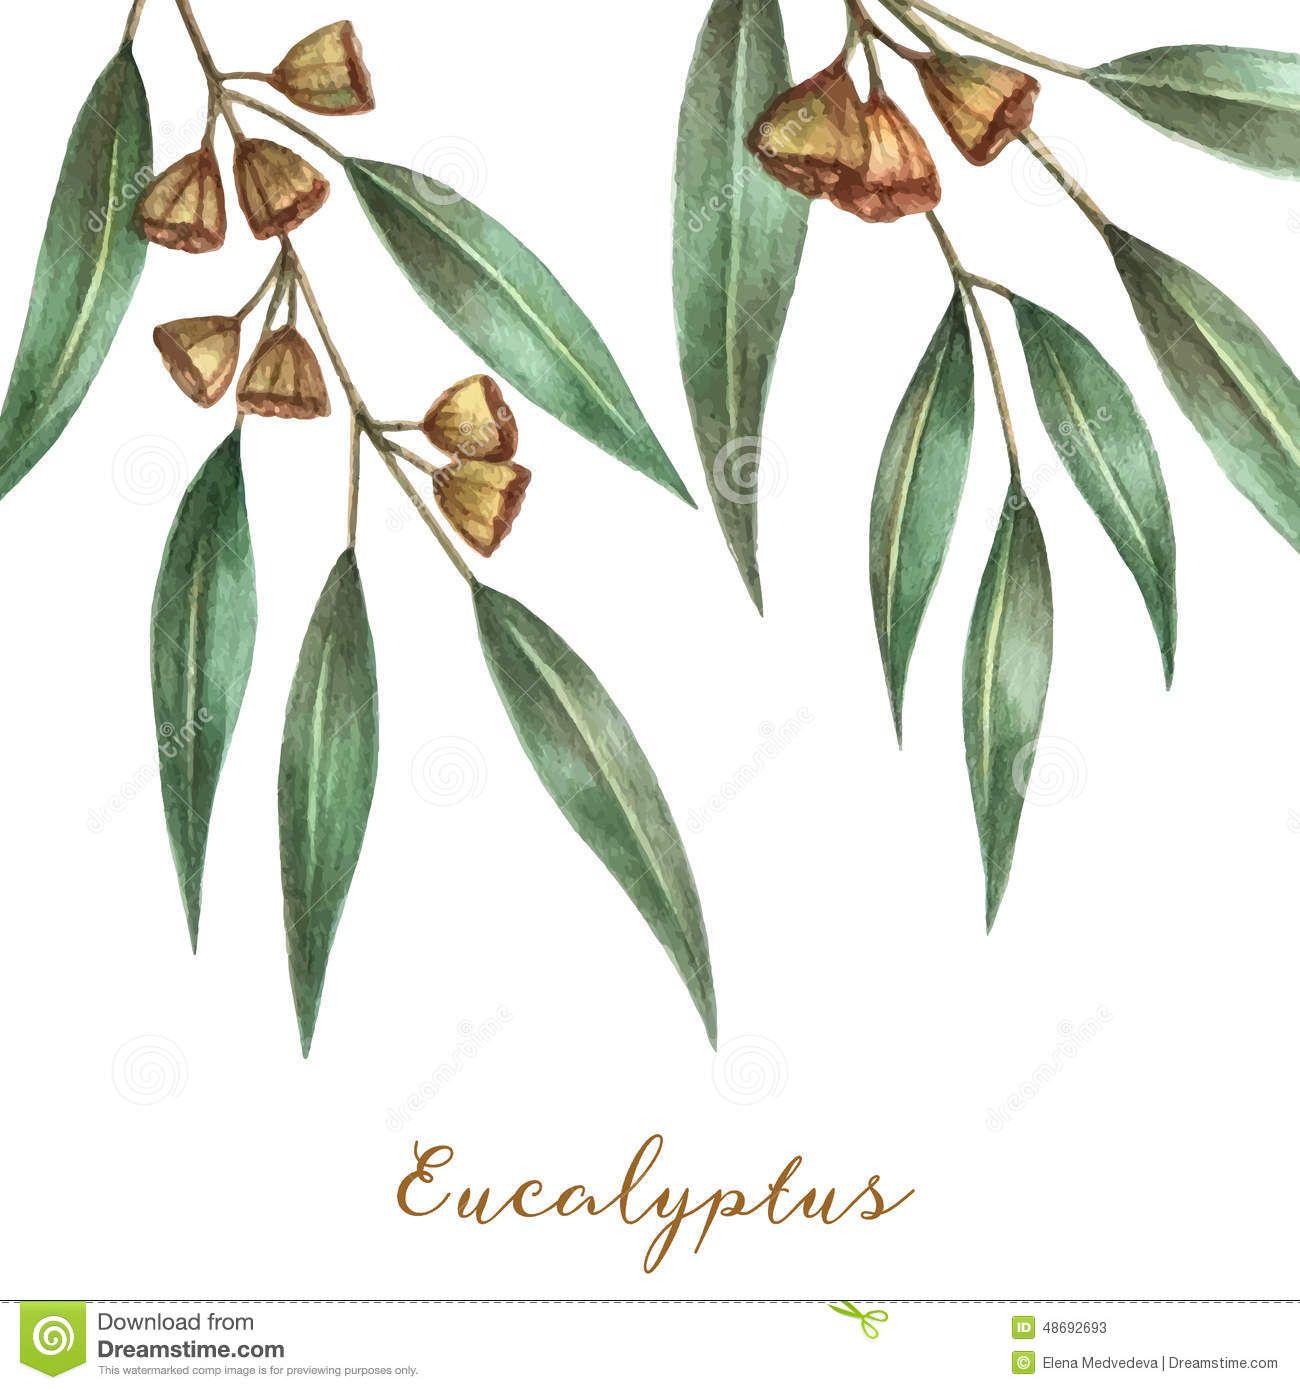 gum blossom silhouette Google Search Eucalyptus leaves